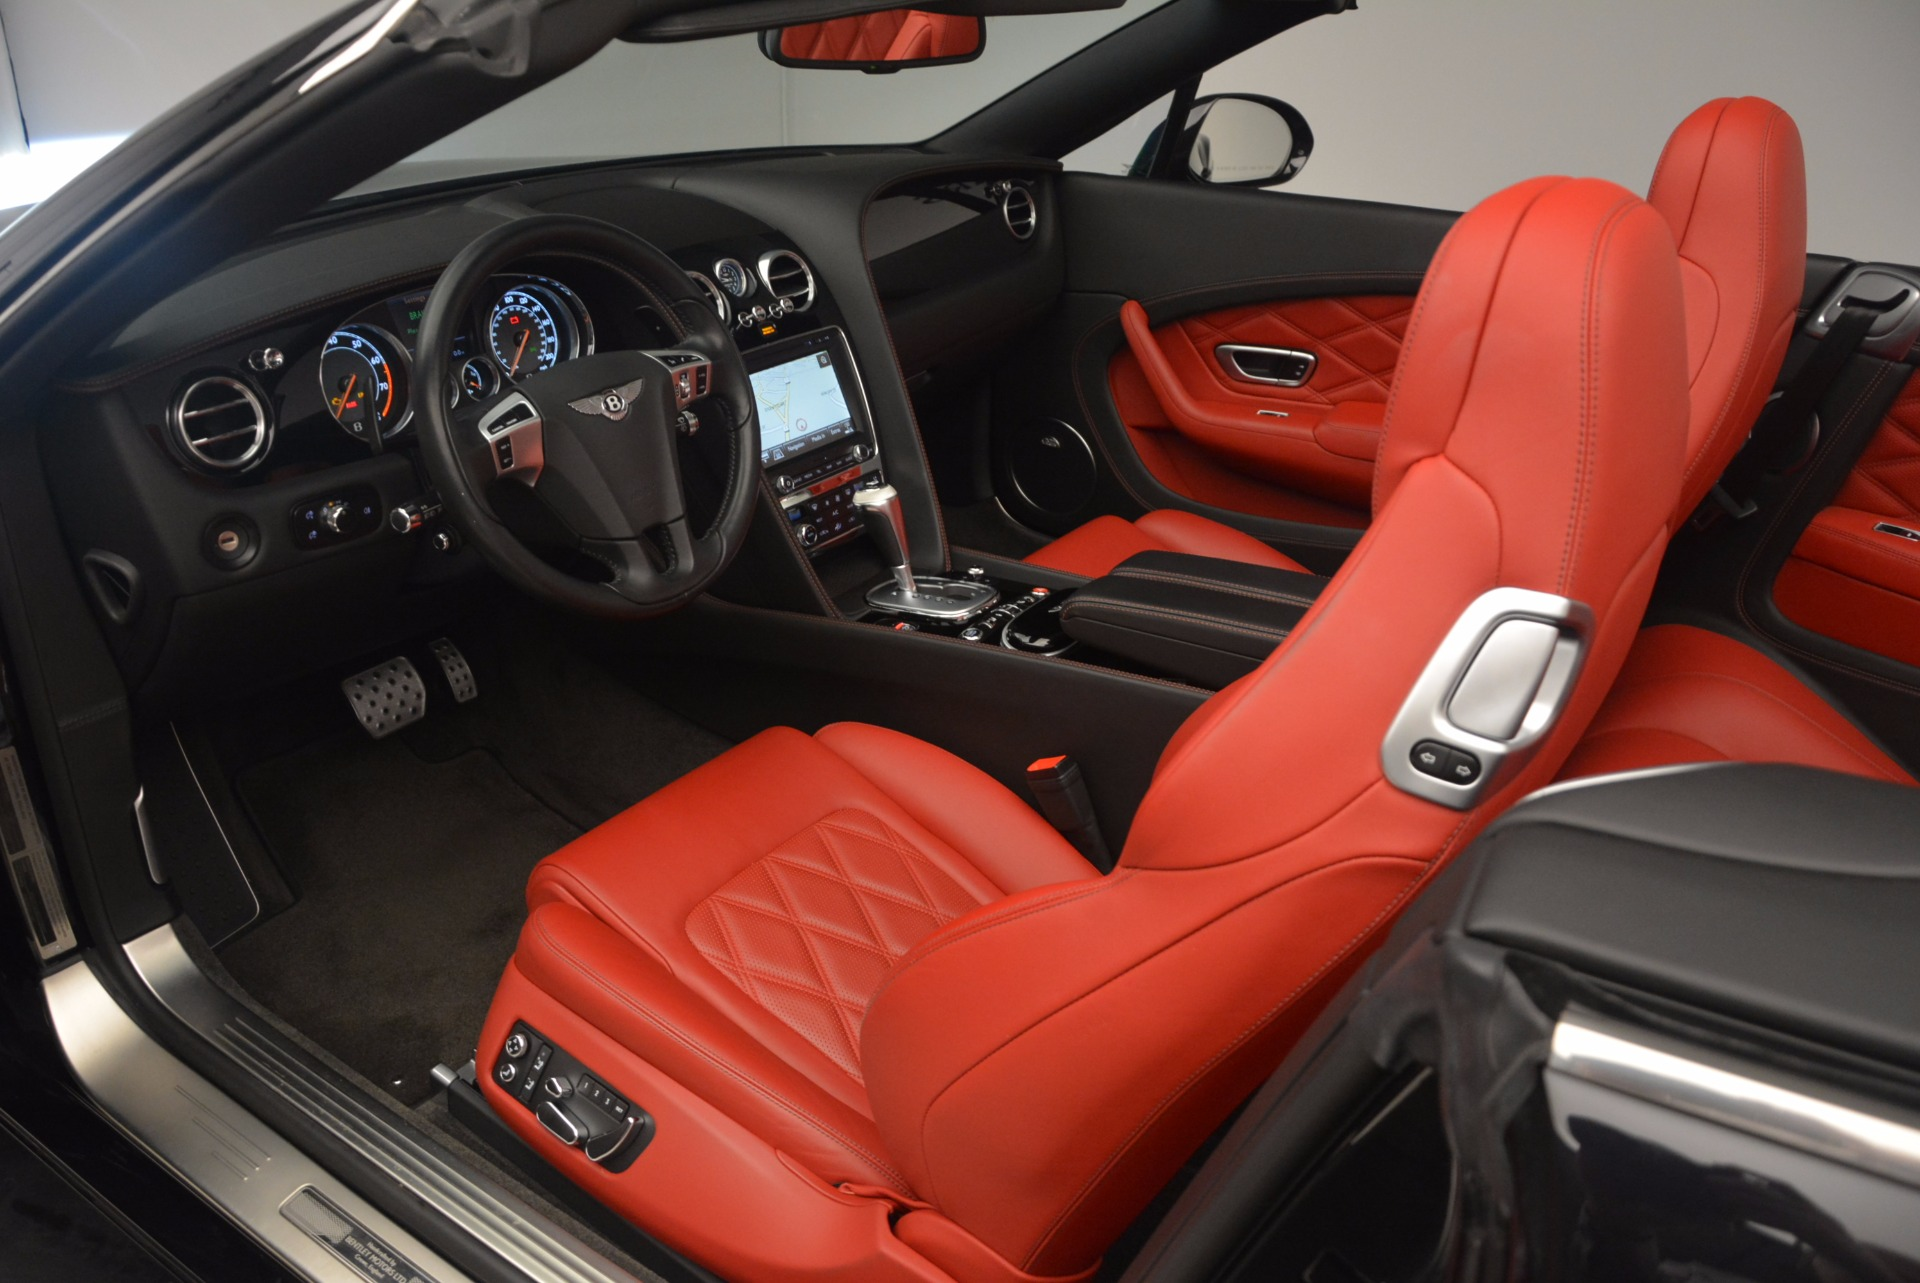 Used 2012 Bentley Continental GT W12 Convertible For Sale In Westport, CT 1104_p35